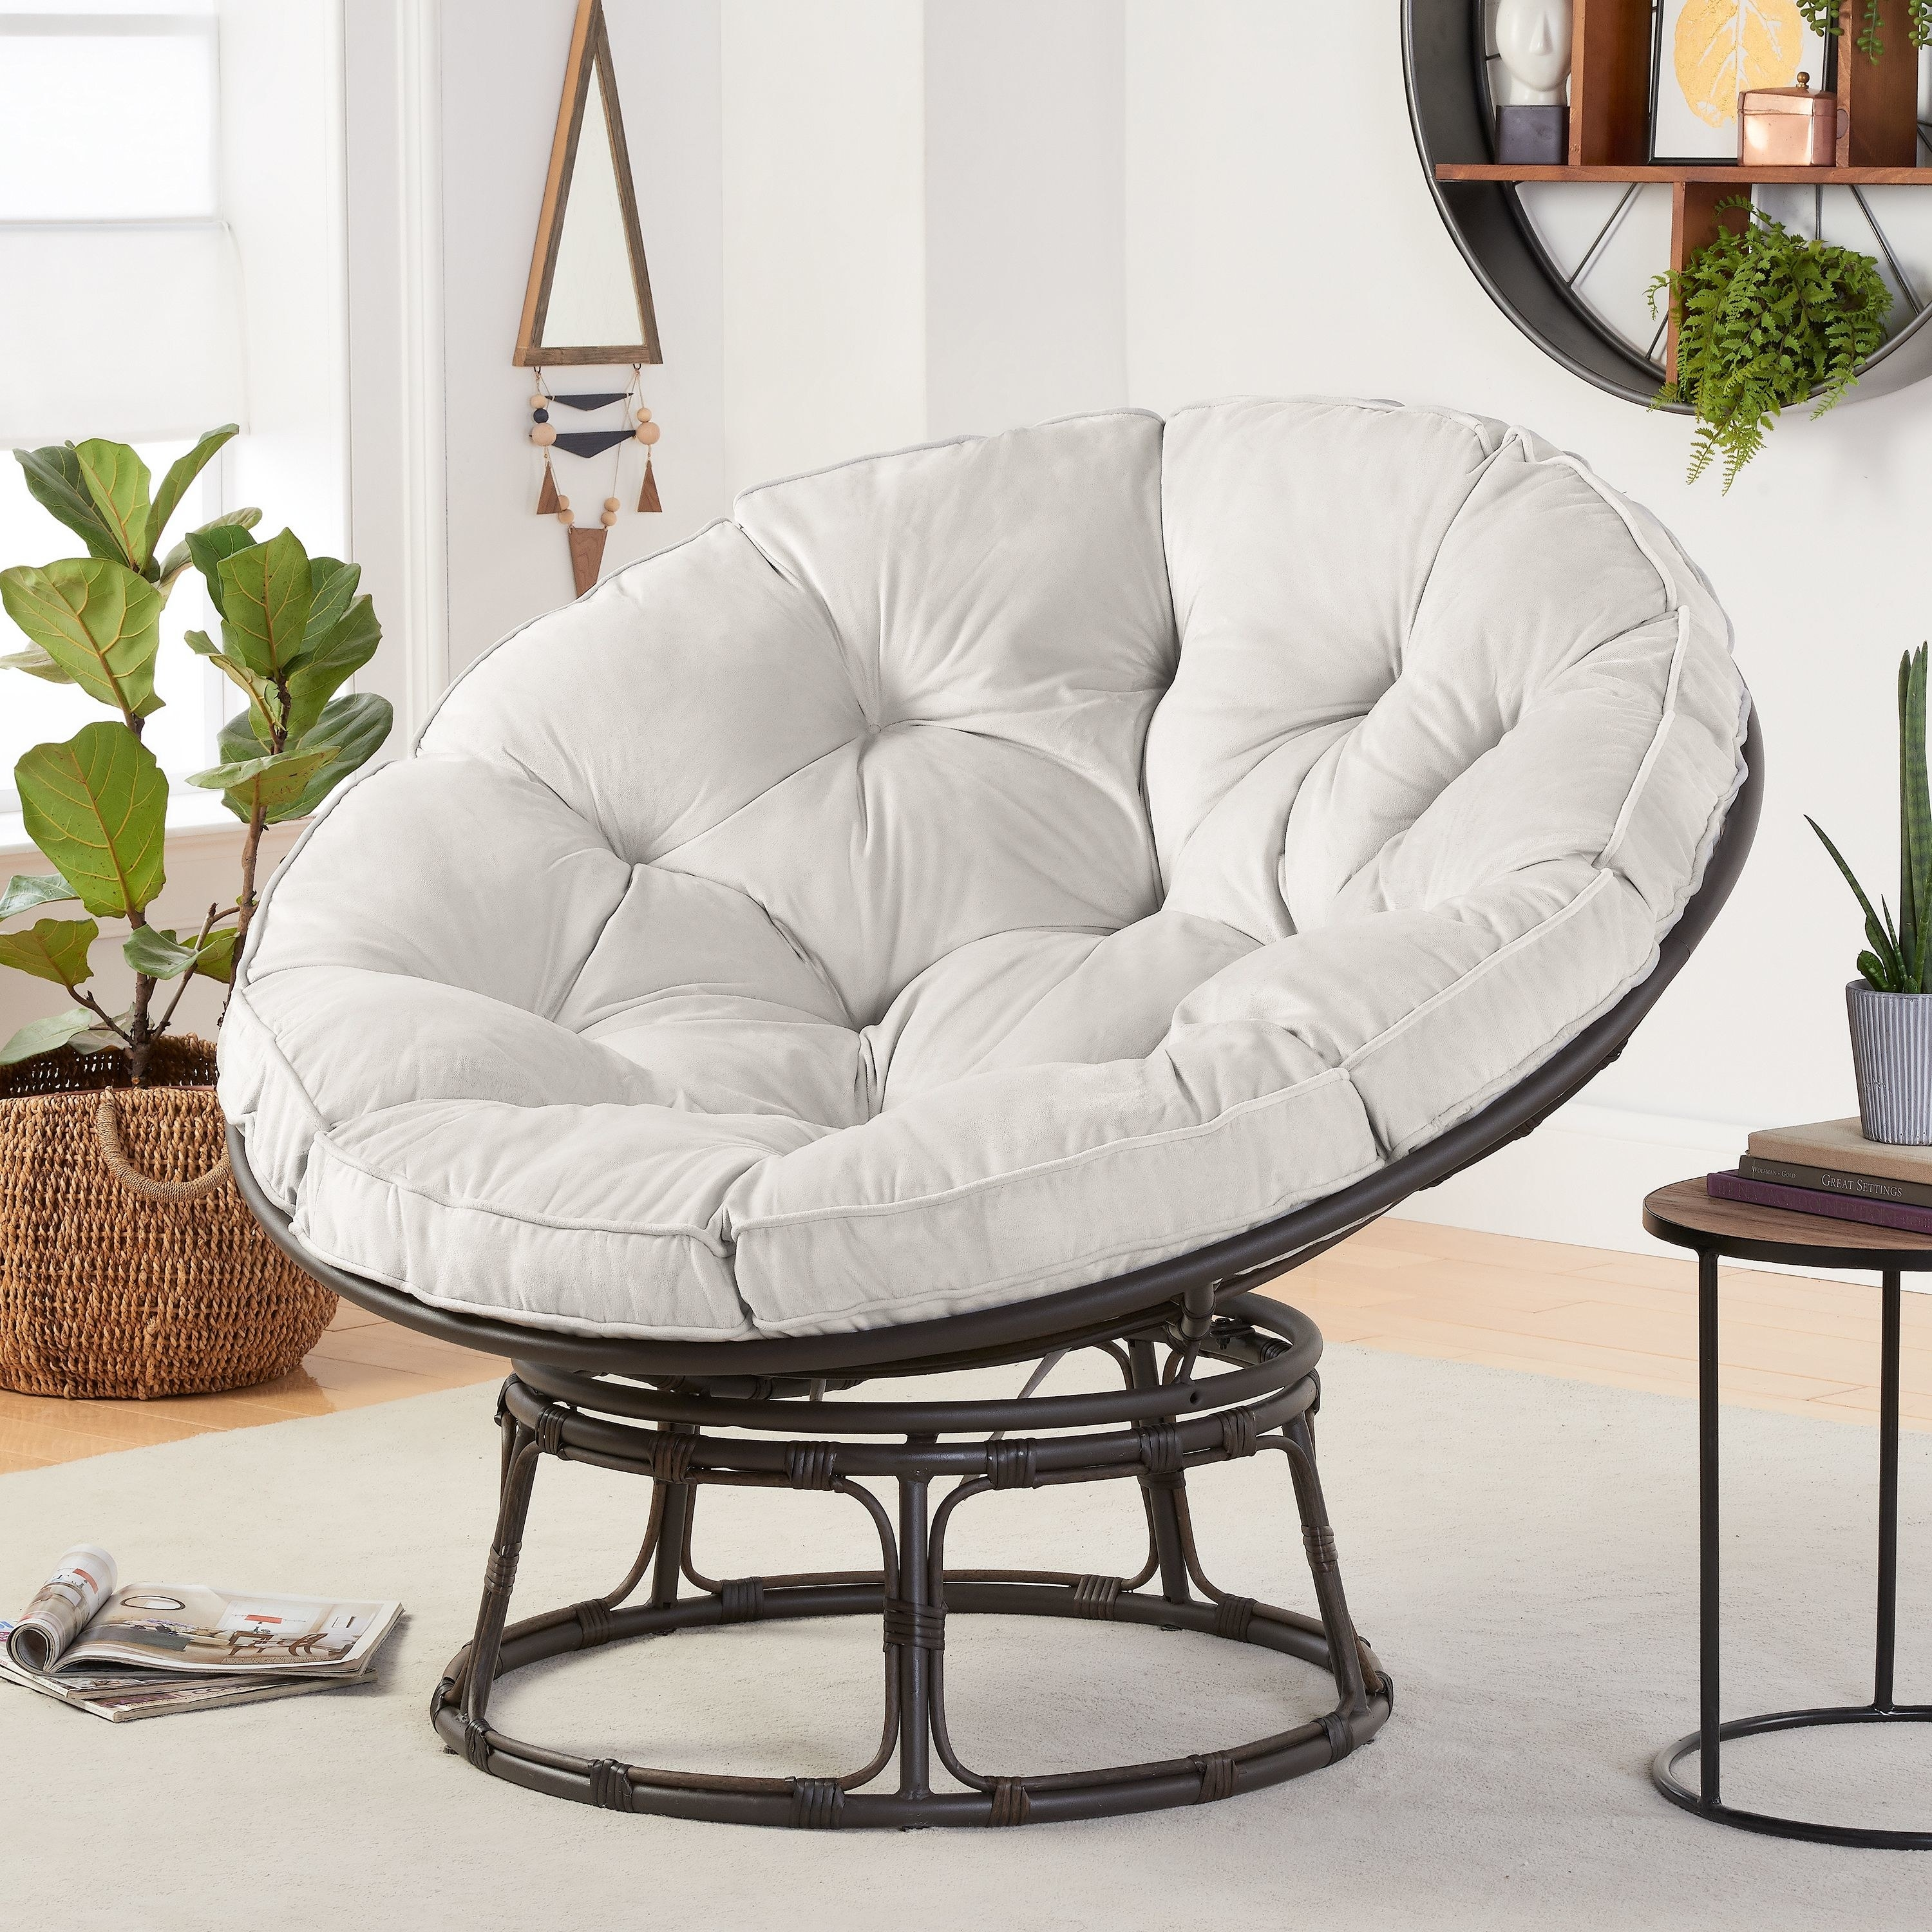 The pumice gray chair